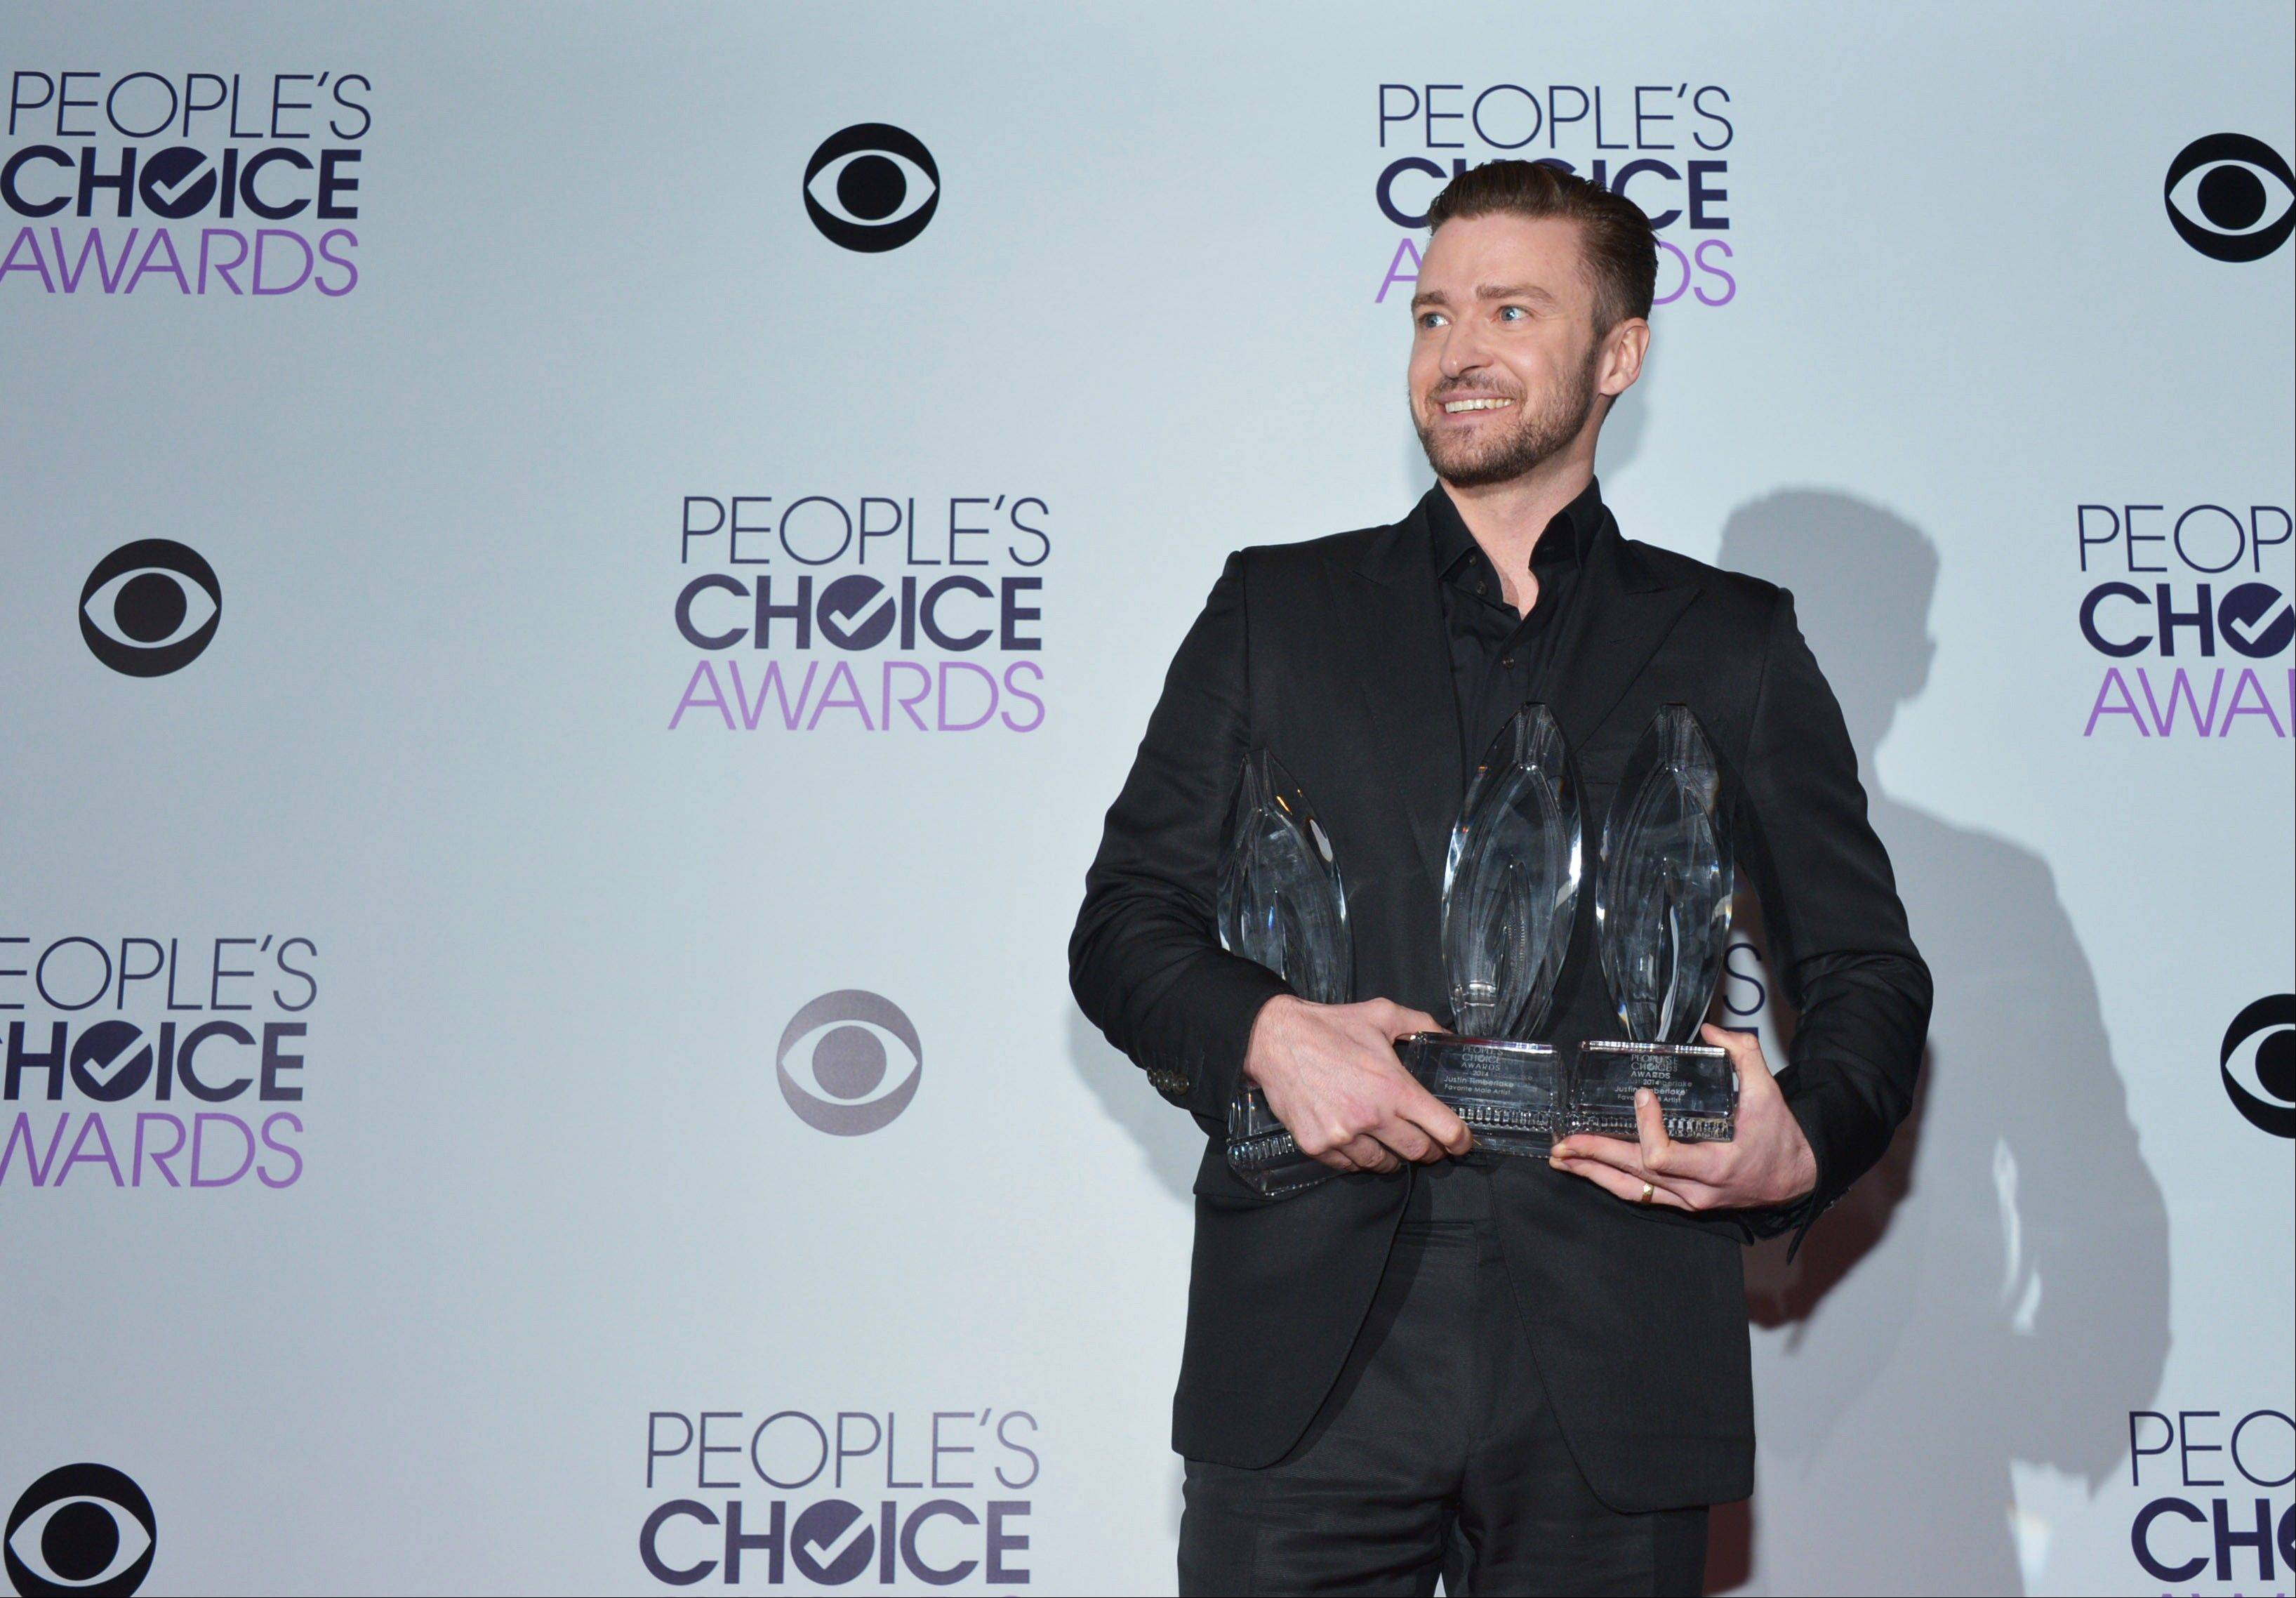 Associated PressJustin Timberlake won Favorite Album, Favorite Male Artist and Favorite R&B Artist awards at the 40th annual People's Choice Awards at Nokia Theatre L.A. Live on Wednesday, Jan. 8, 2014, in Los Angeles.